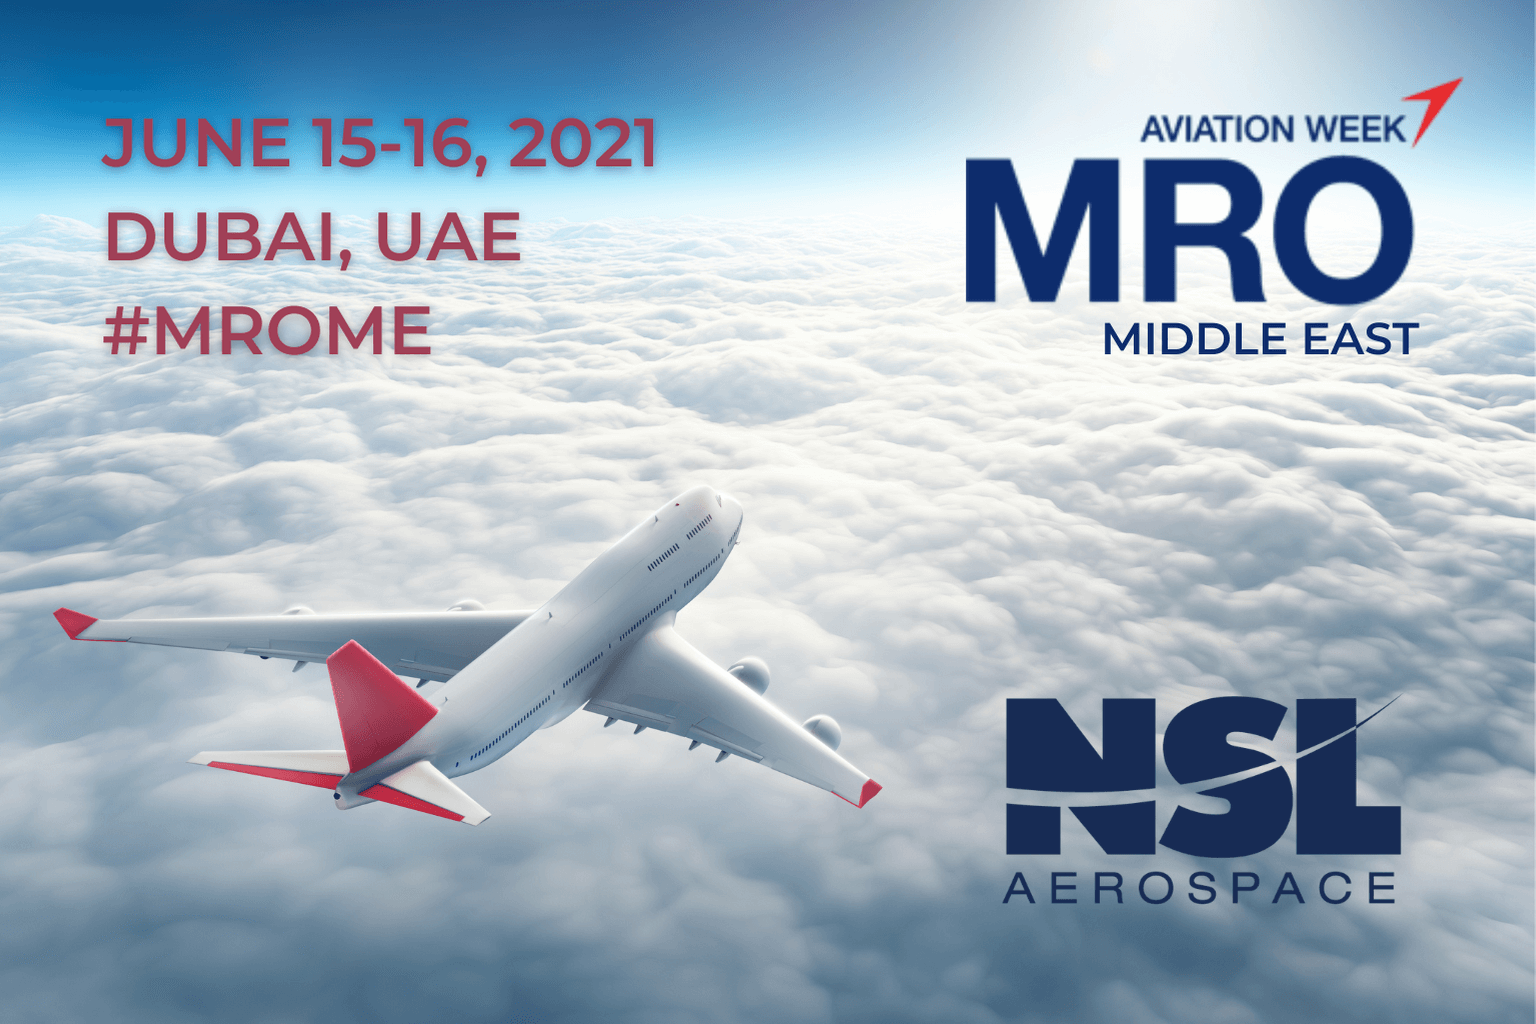 MRO Middle East Aviation Conference 2021 from June 15-16